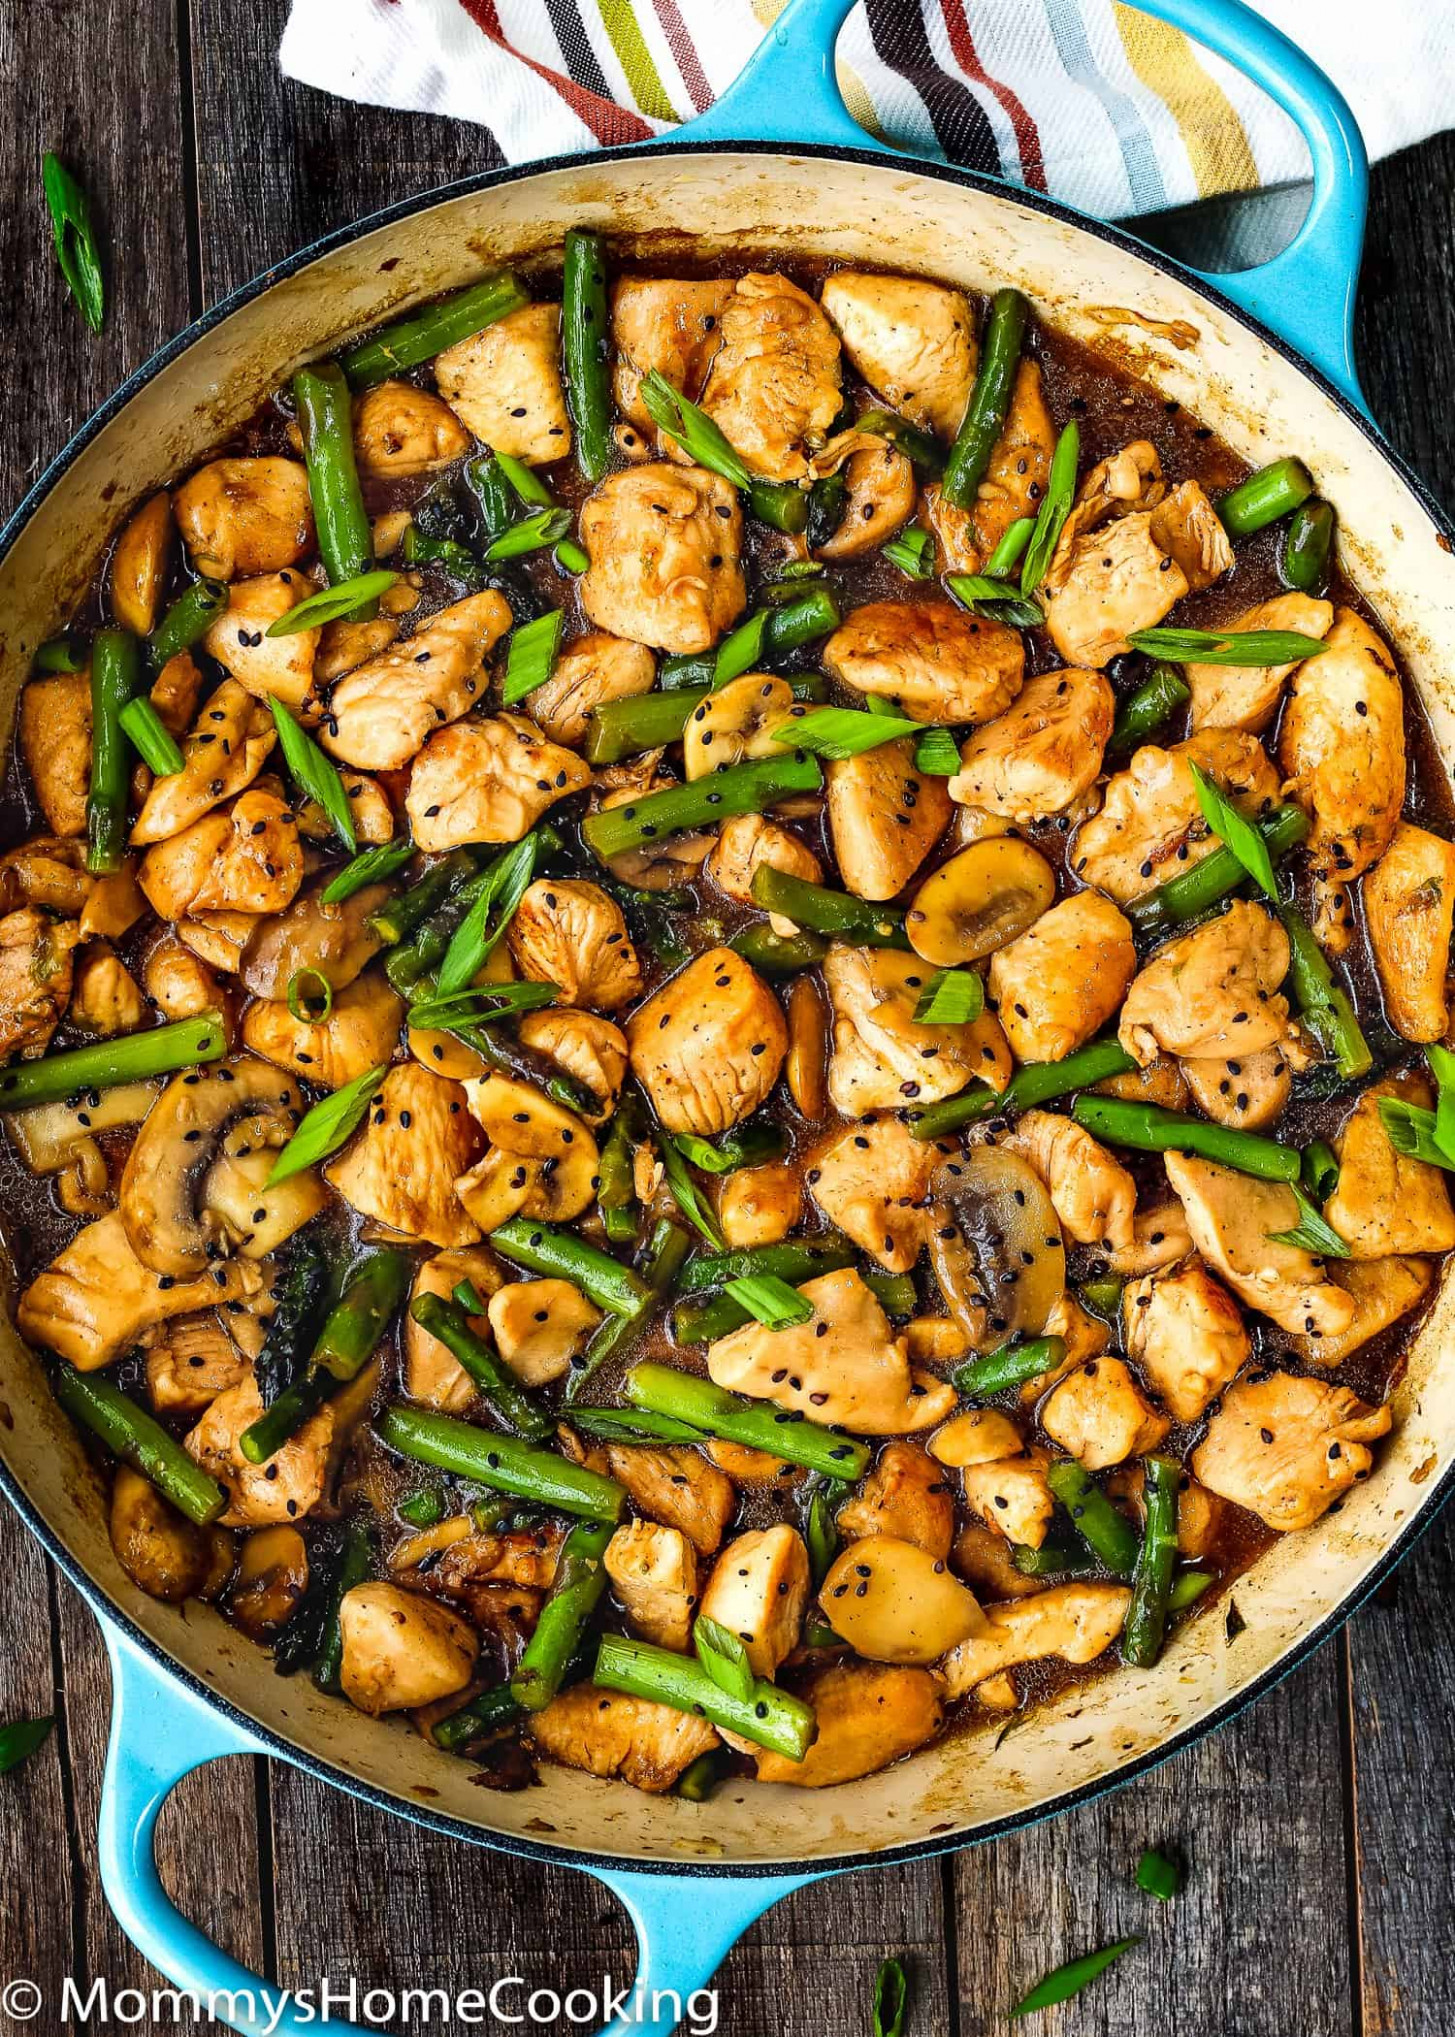 Easy Healthy Chicken and Asparagus Skillet - Mommy's Home ..